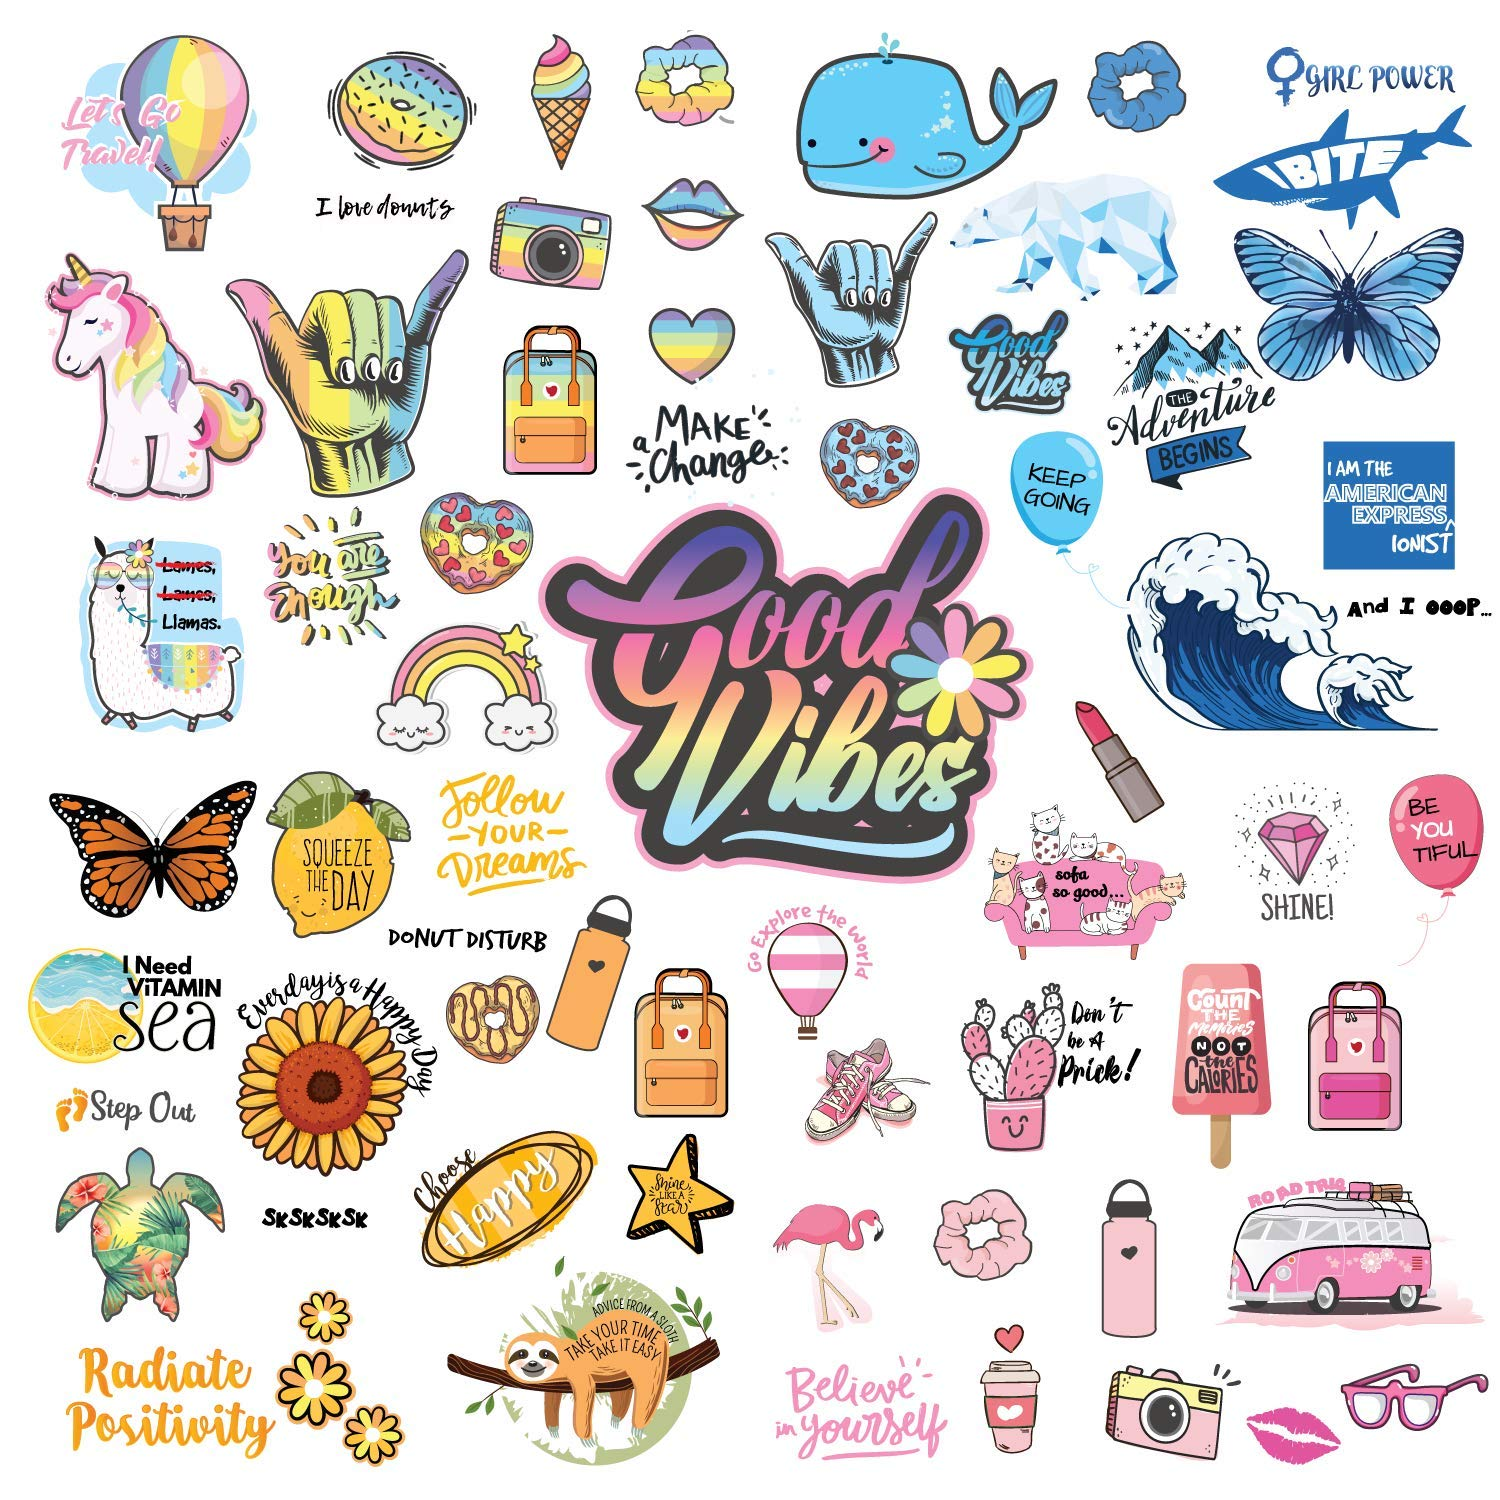 Waterproof VSCO Girl Stickers for Water Bottles | Reusable Stickers Pack of [66pcs] Cute VSCO Vinyl Stickers in Rainbow Pink Blue Yellow - Aesthetic Stickers Include Sloth Llamas Unicorn Stickers